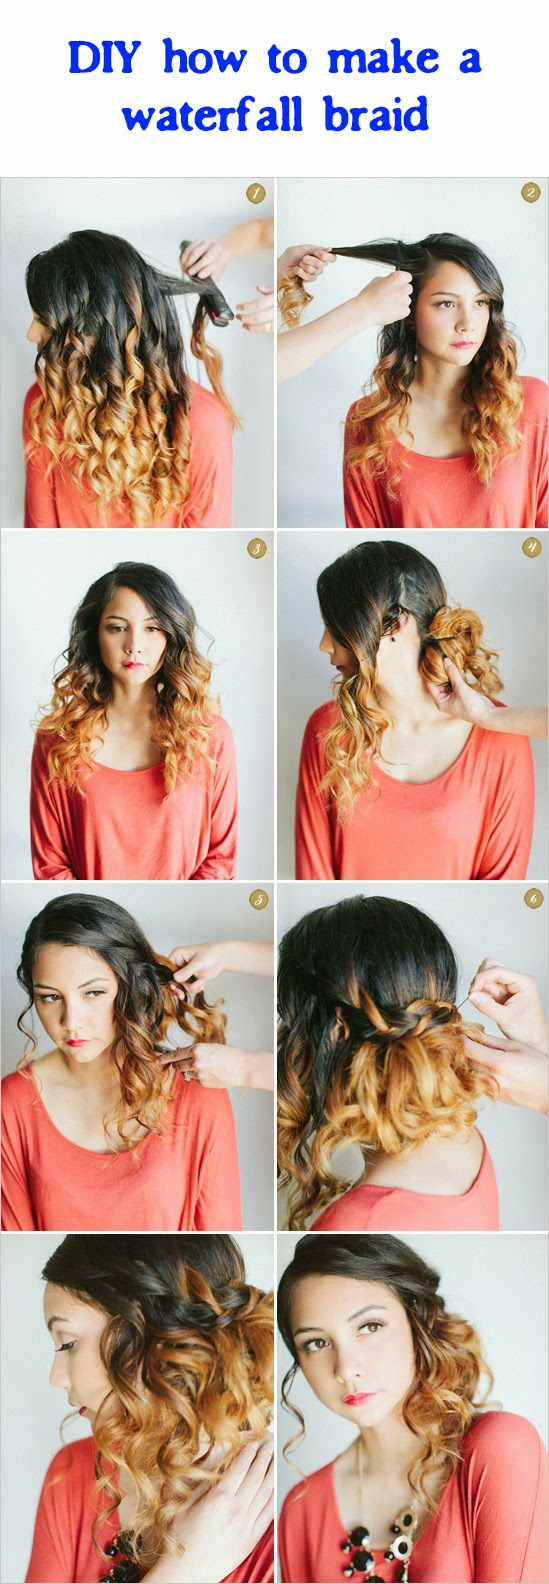 DIY how to make a waterfall braid